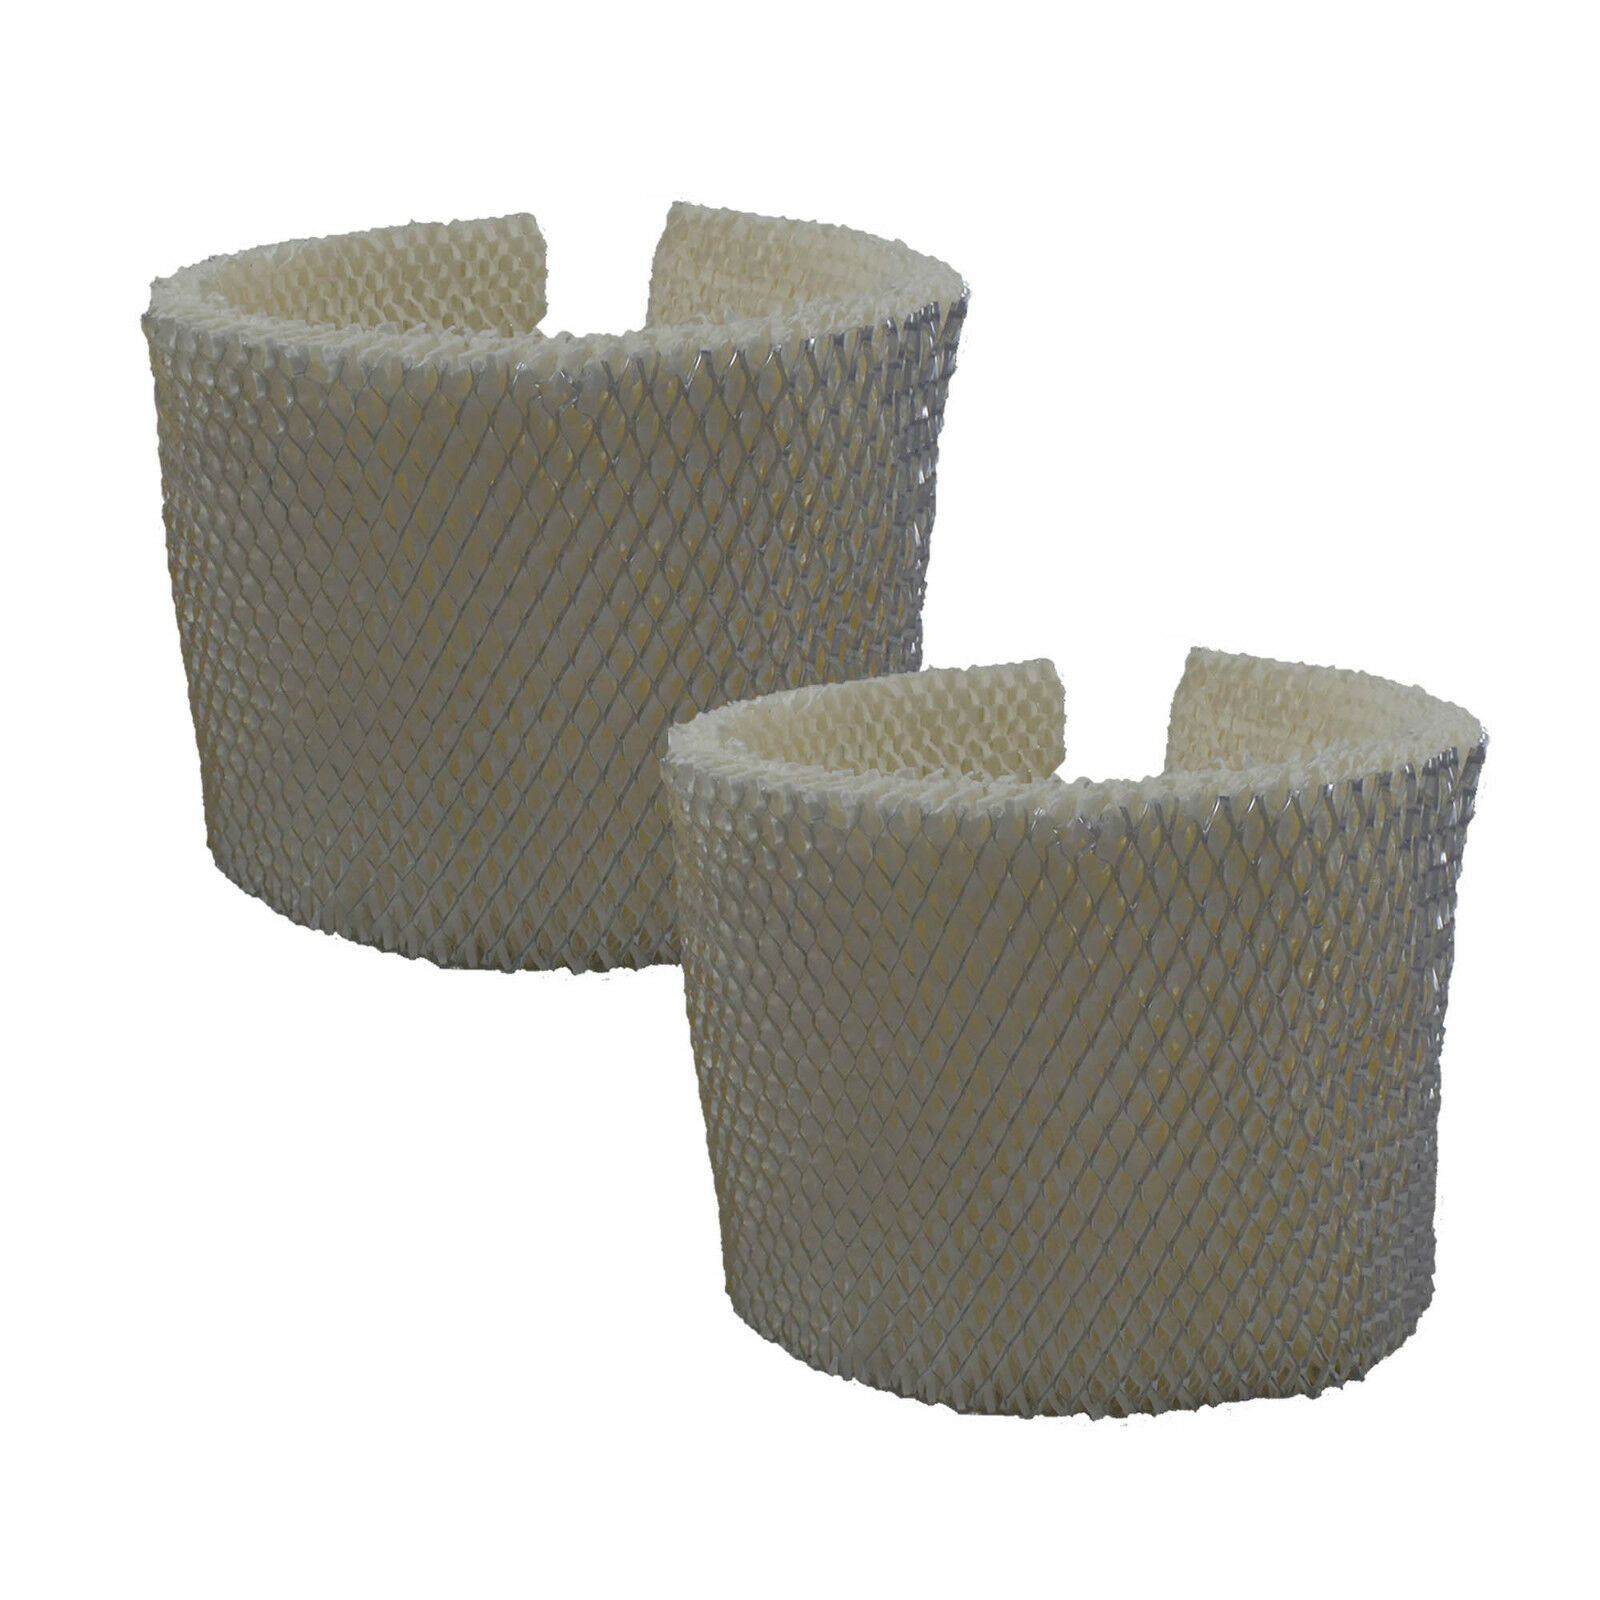 """Kenmore Sears 14906 Compatible Humidifier Wick Filter 7-7/8"""" x 30-7/8"""" (2-Pack)"""